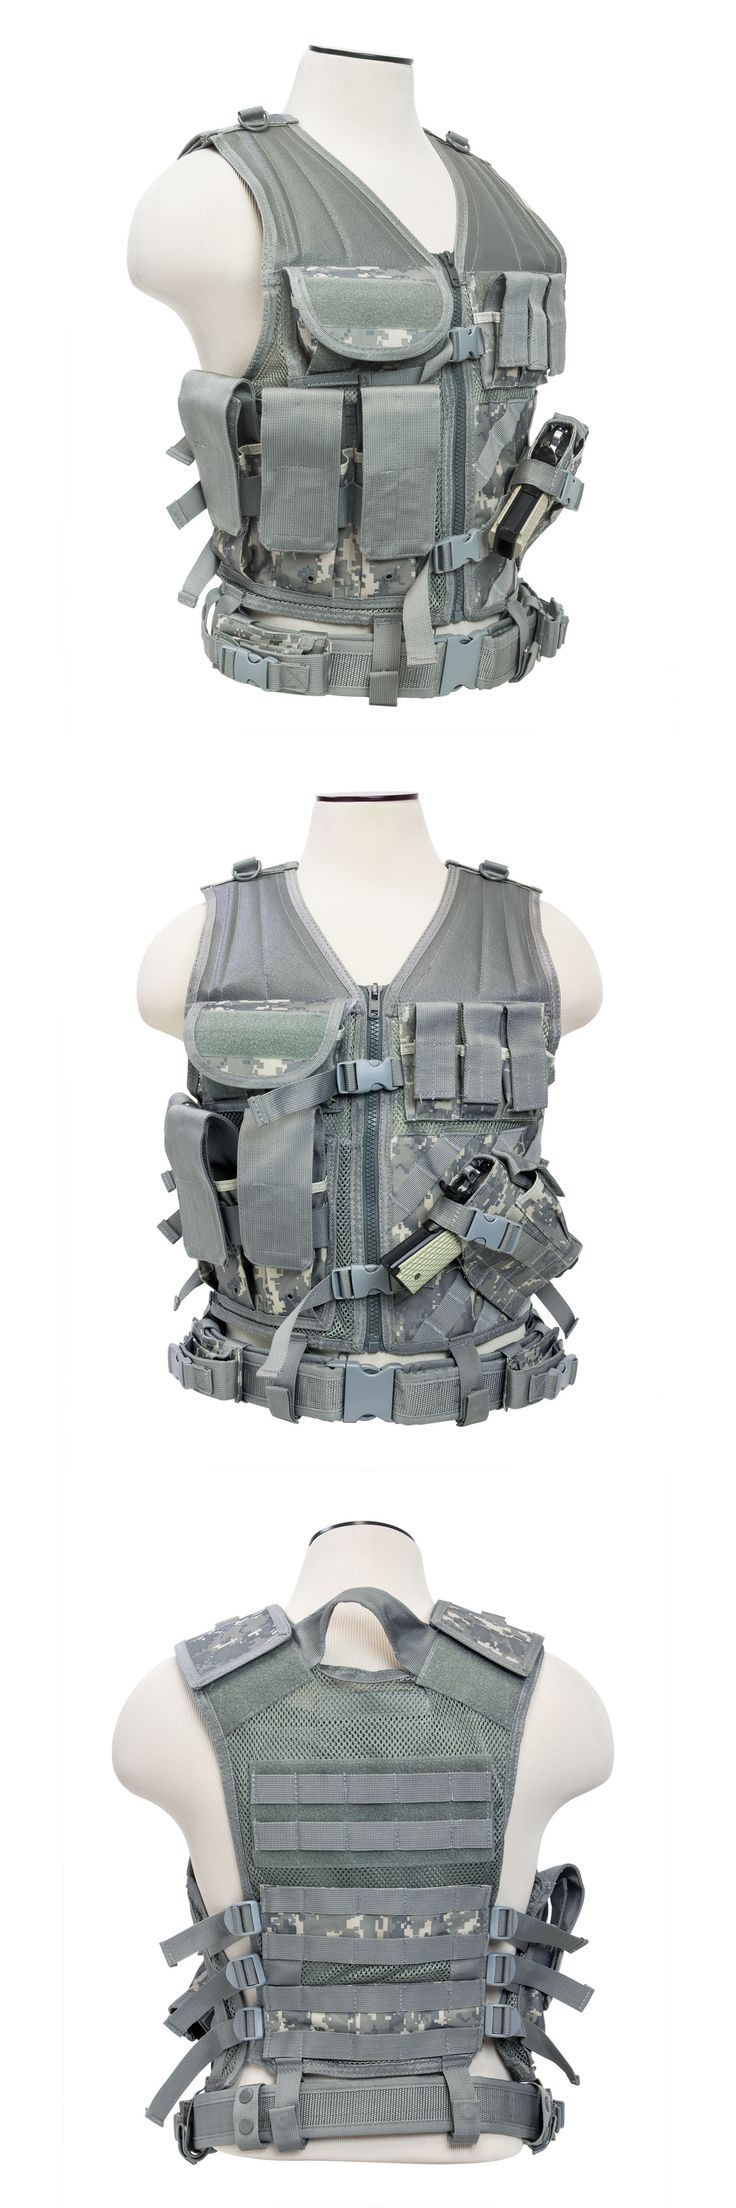 Chest Rigs and Tactical Vests 177891: Ncstar Ctv2916d Pvc Military Tactical Heavy Duty Vest W Pistol Holster Dig Acu -> BUY IT NOW ONLY: $35.95 on eBay!